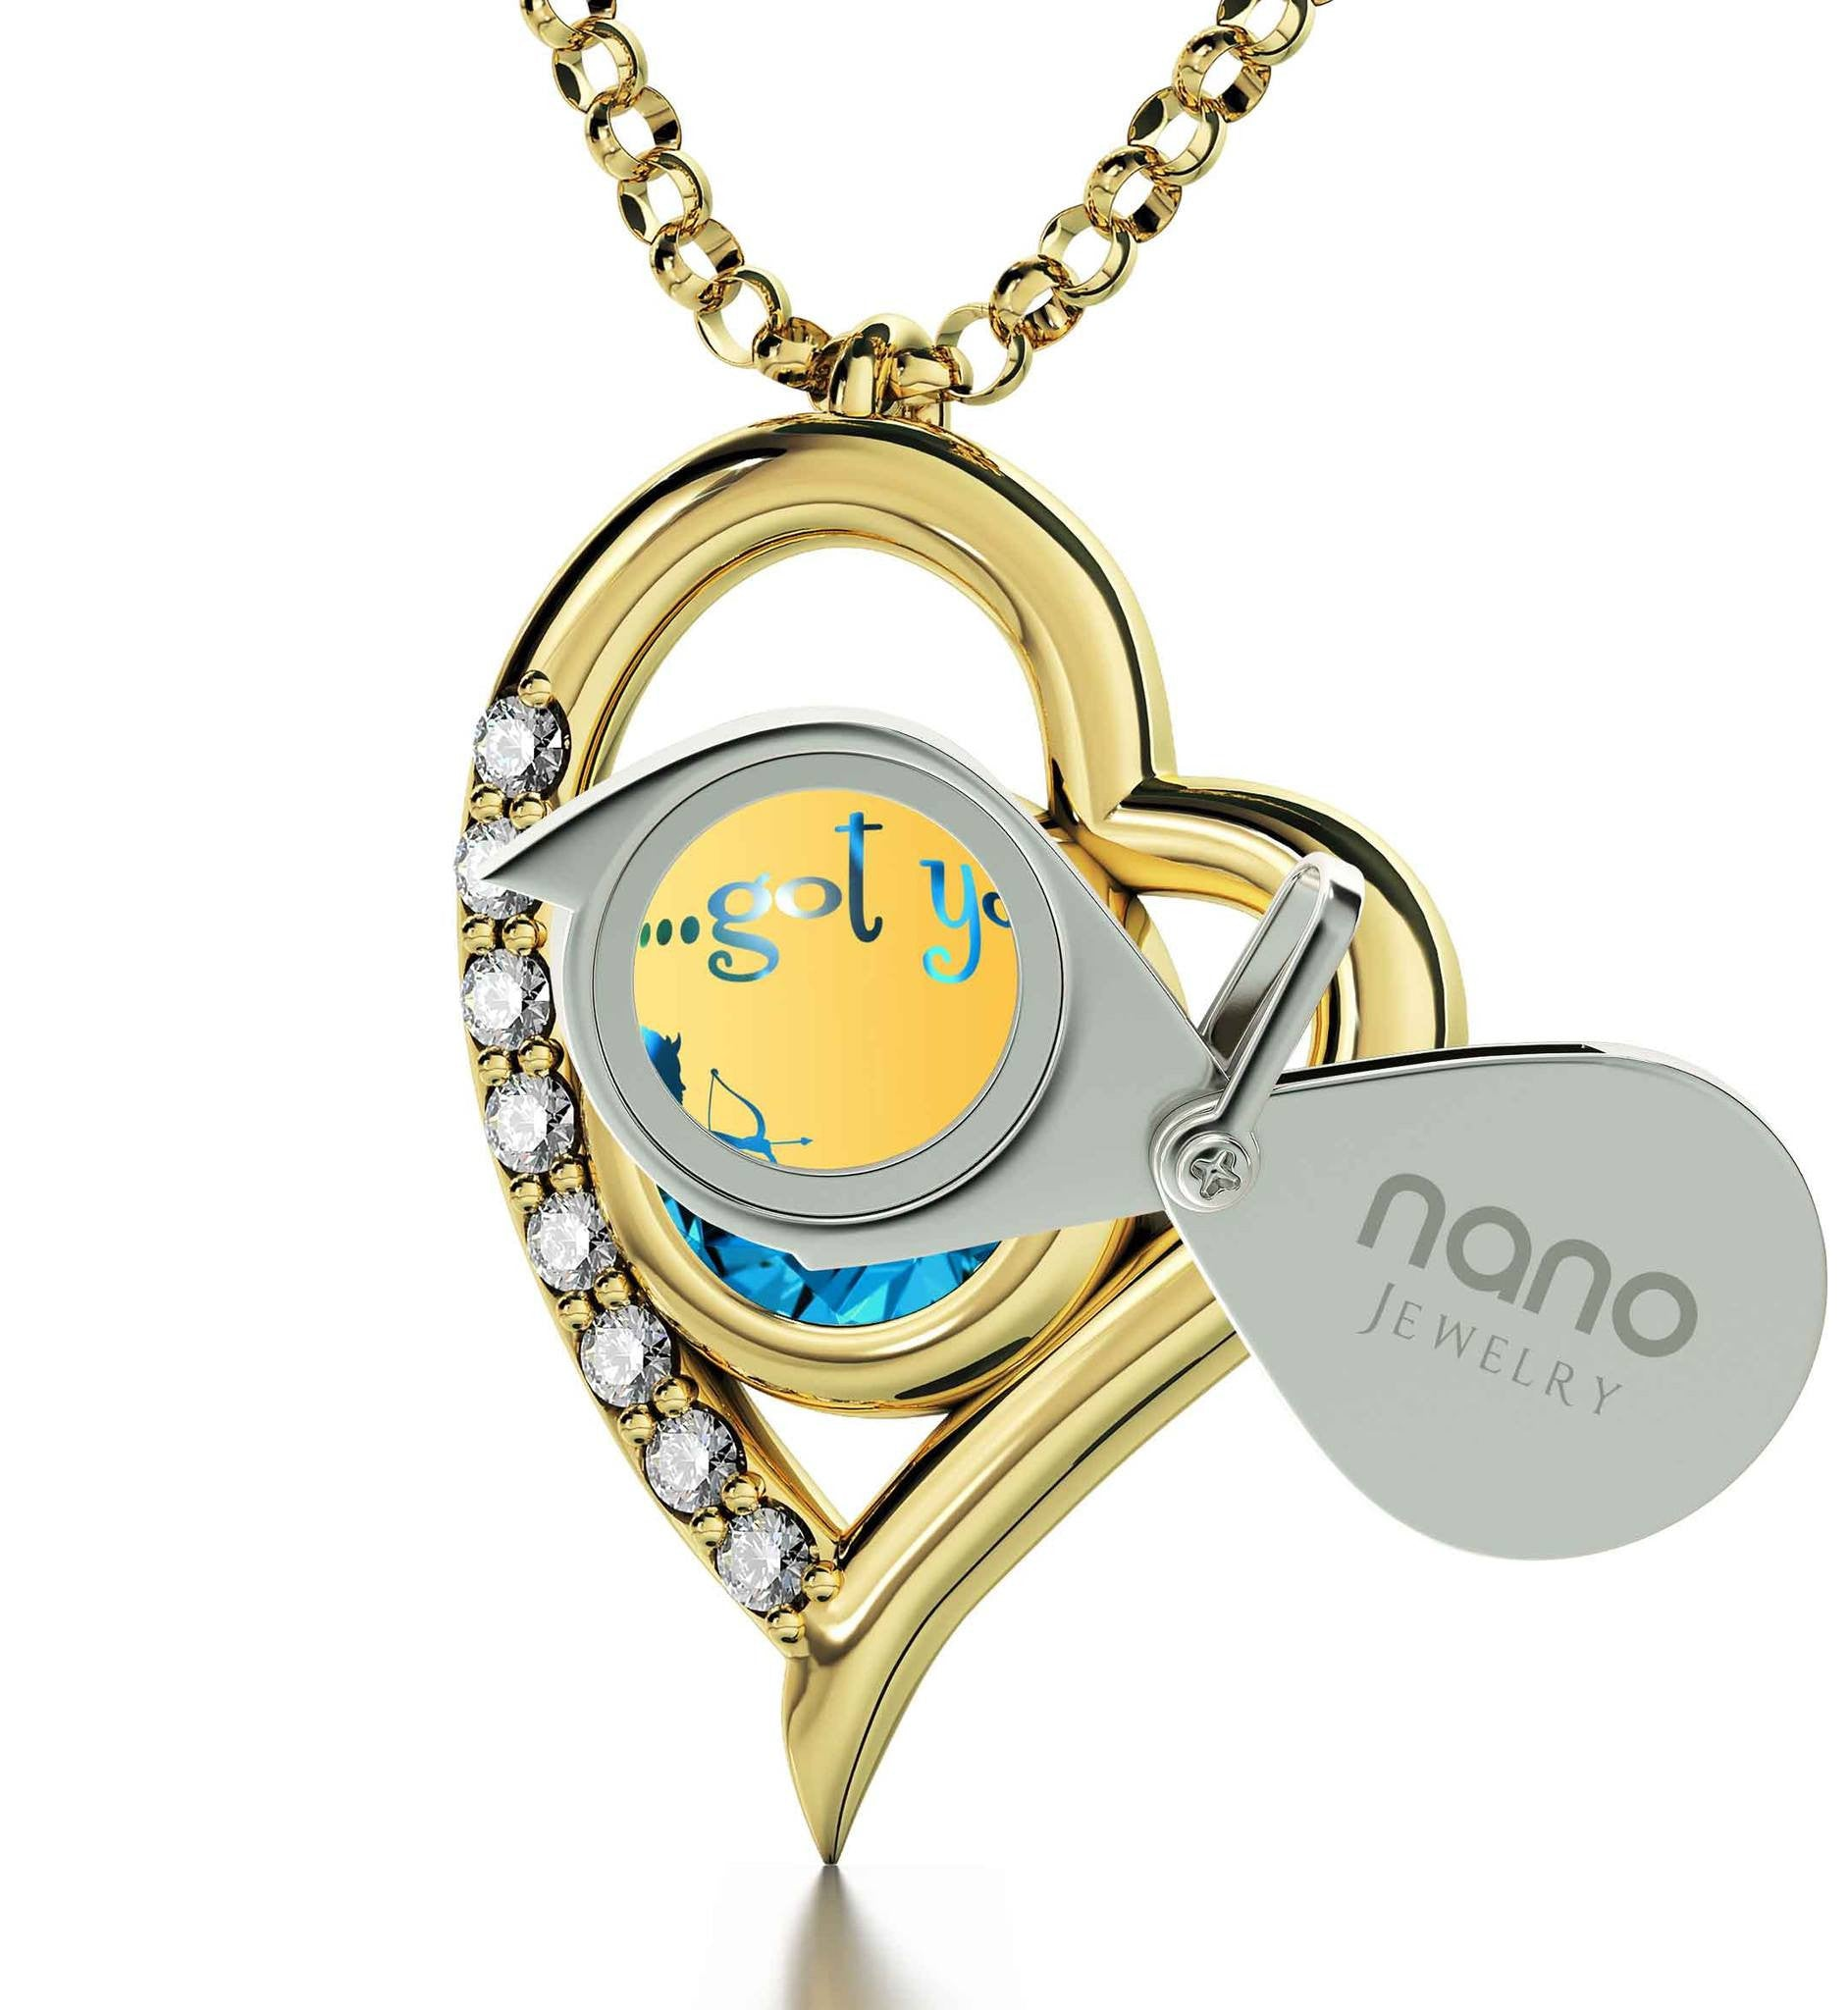 """What to Get Wife for Christmas, 14k Pure Gold Heart Frame Necklace, Girlfriend Birthday Ideas, by Nano Jewelry"""